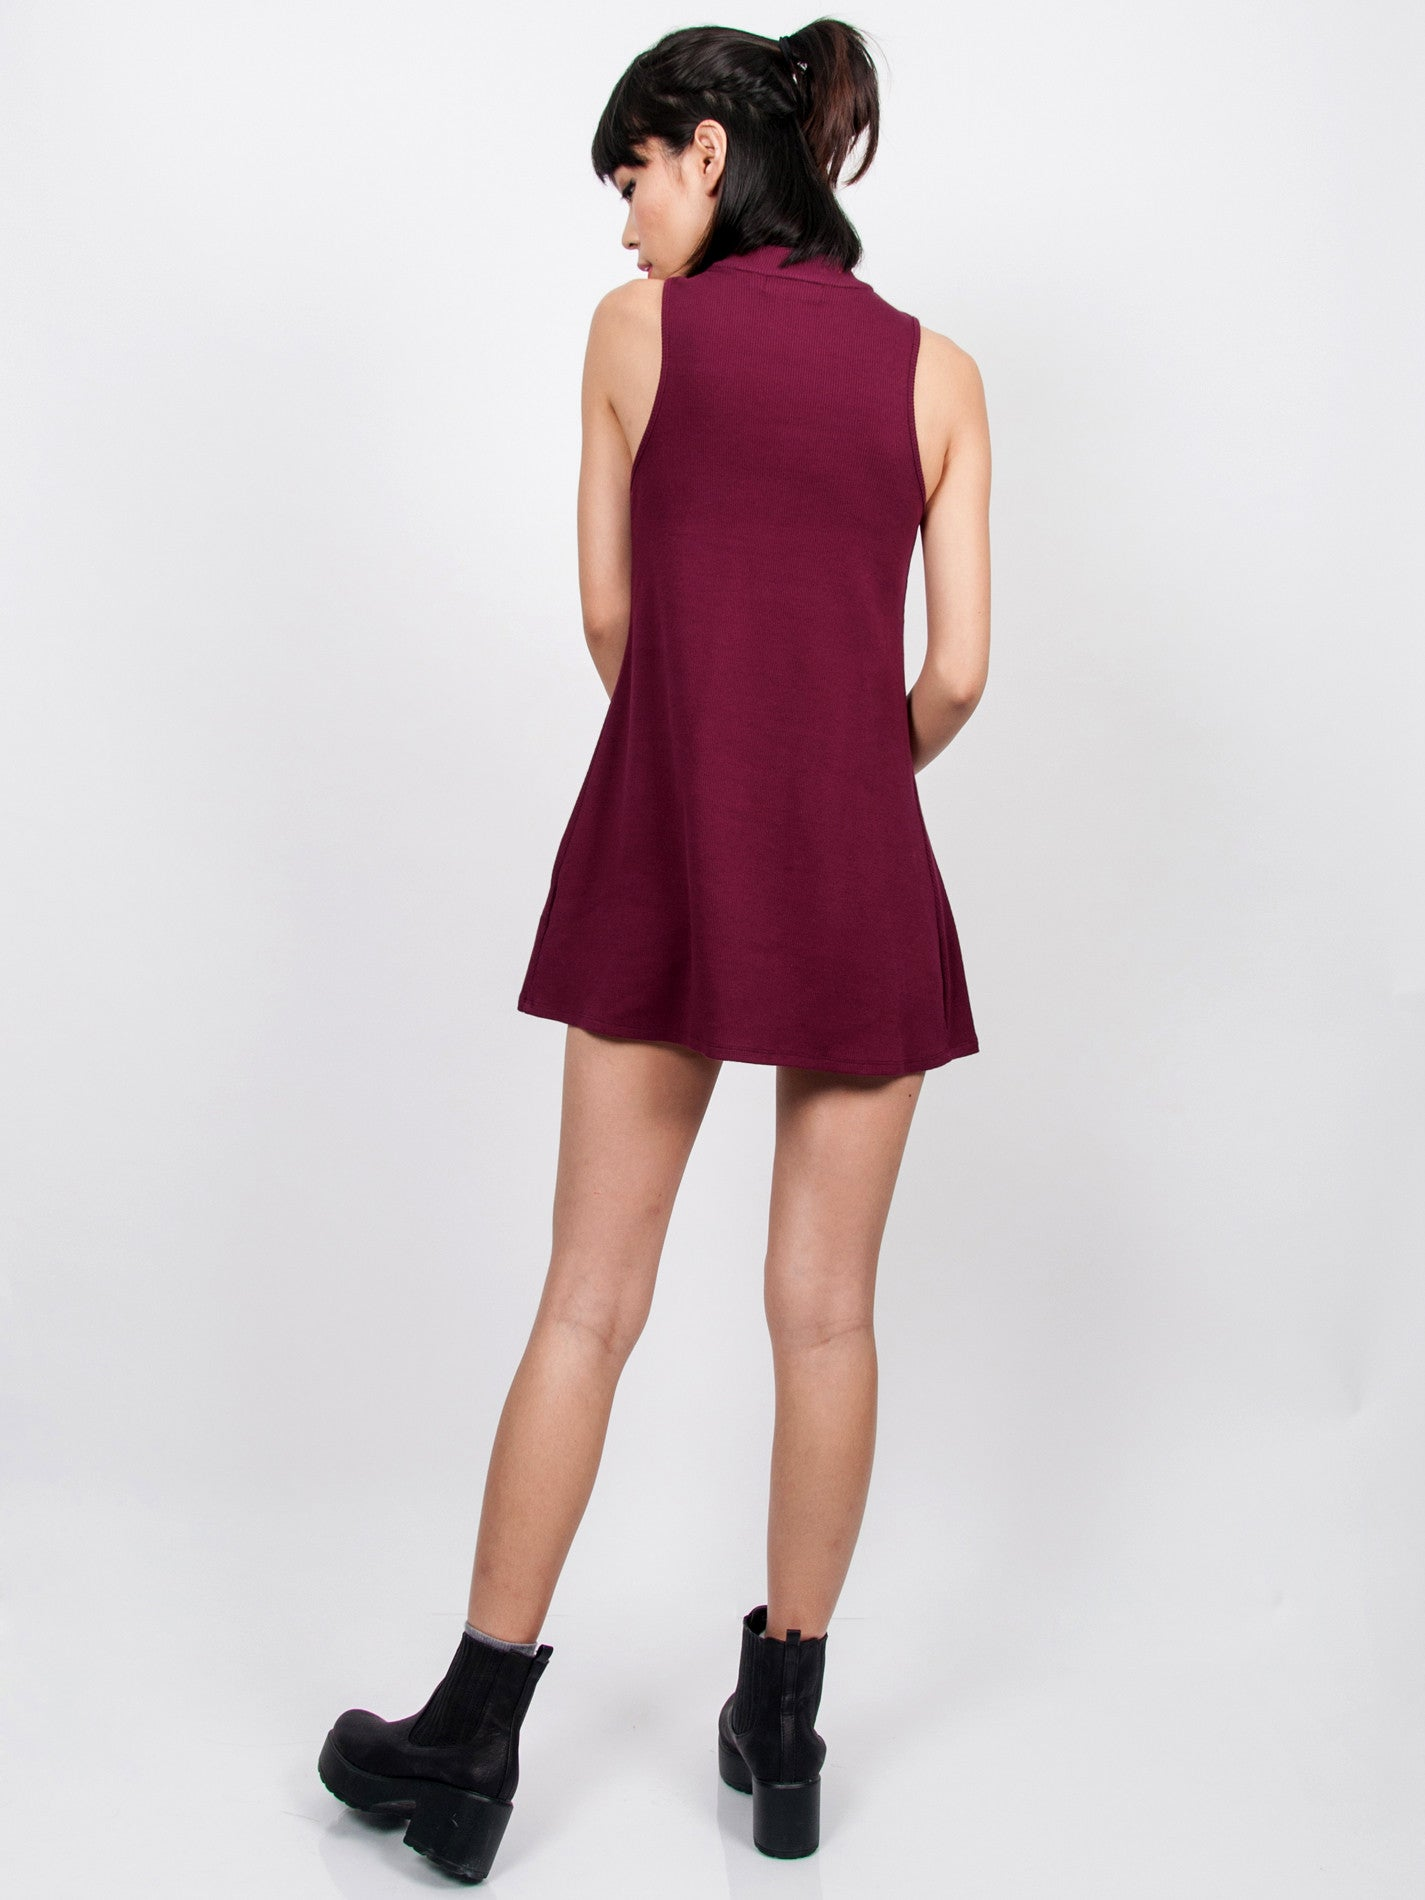 CLARE Ribbed High Neck Dress (Berry)